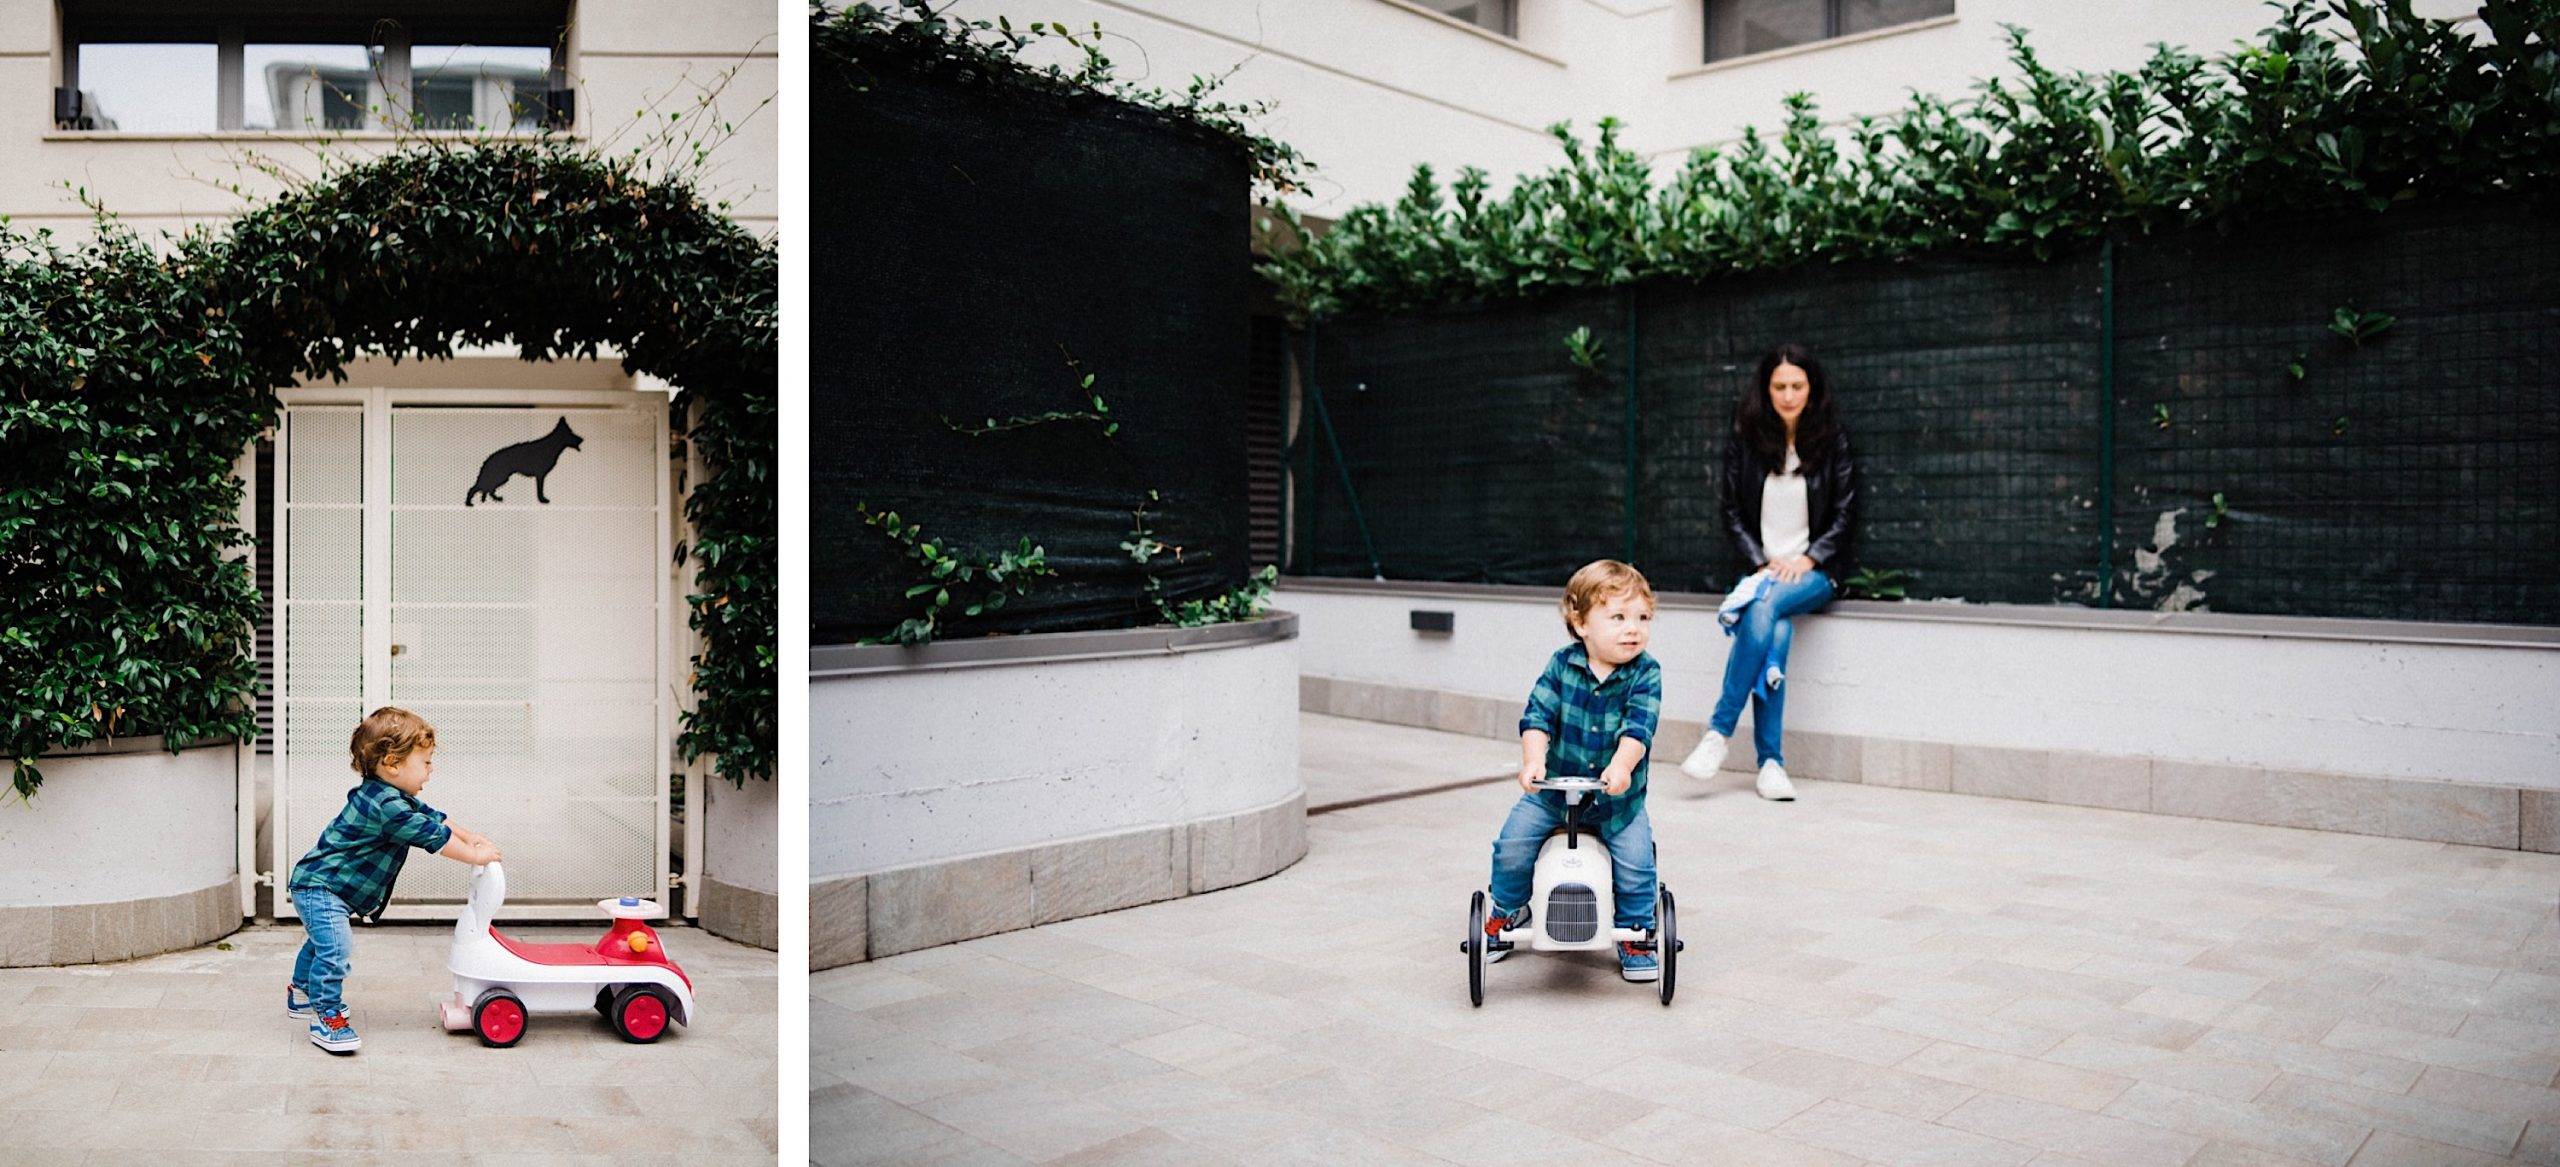 Side-by-side fun family portraits of a little boy playing with a bike in a courtyard at his home.